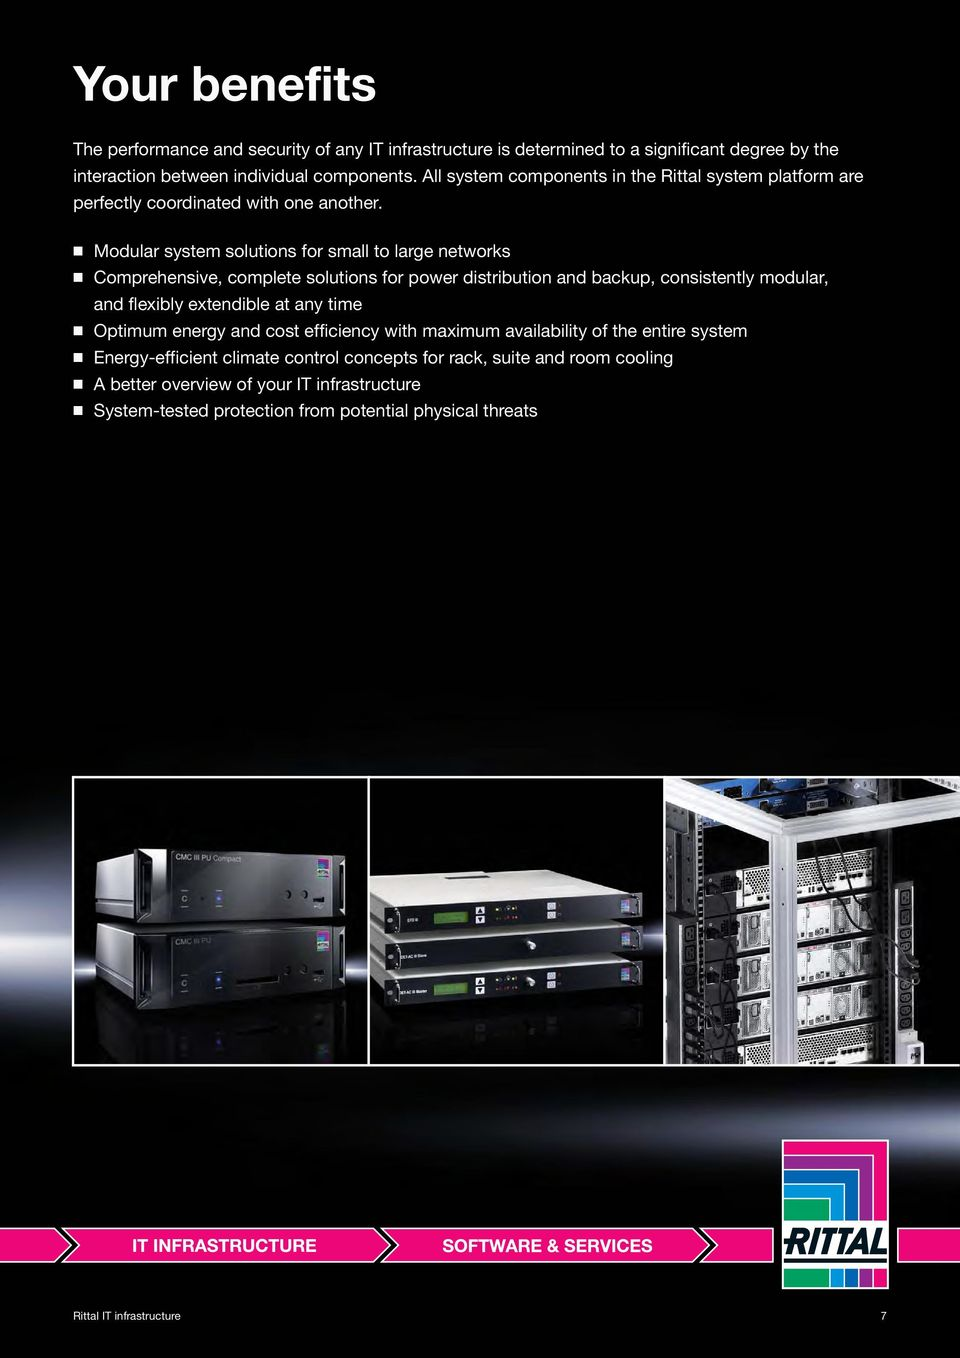 Modular system solutions for small to large networks Comprehensive, complete solutions for power distribution and backup, consistently modular, and flexibly extendible at any